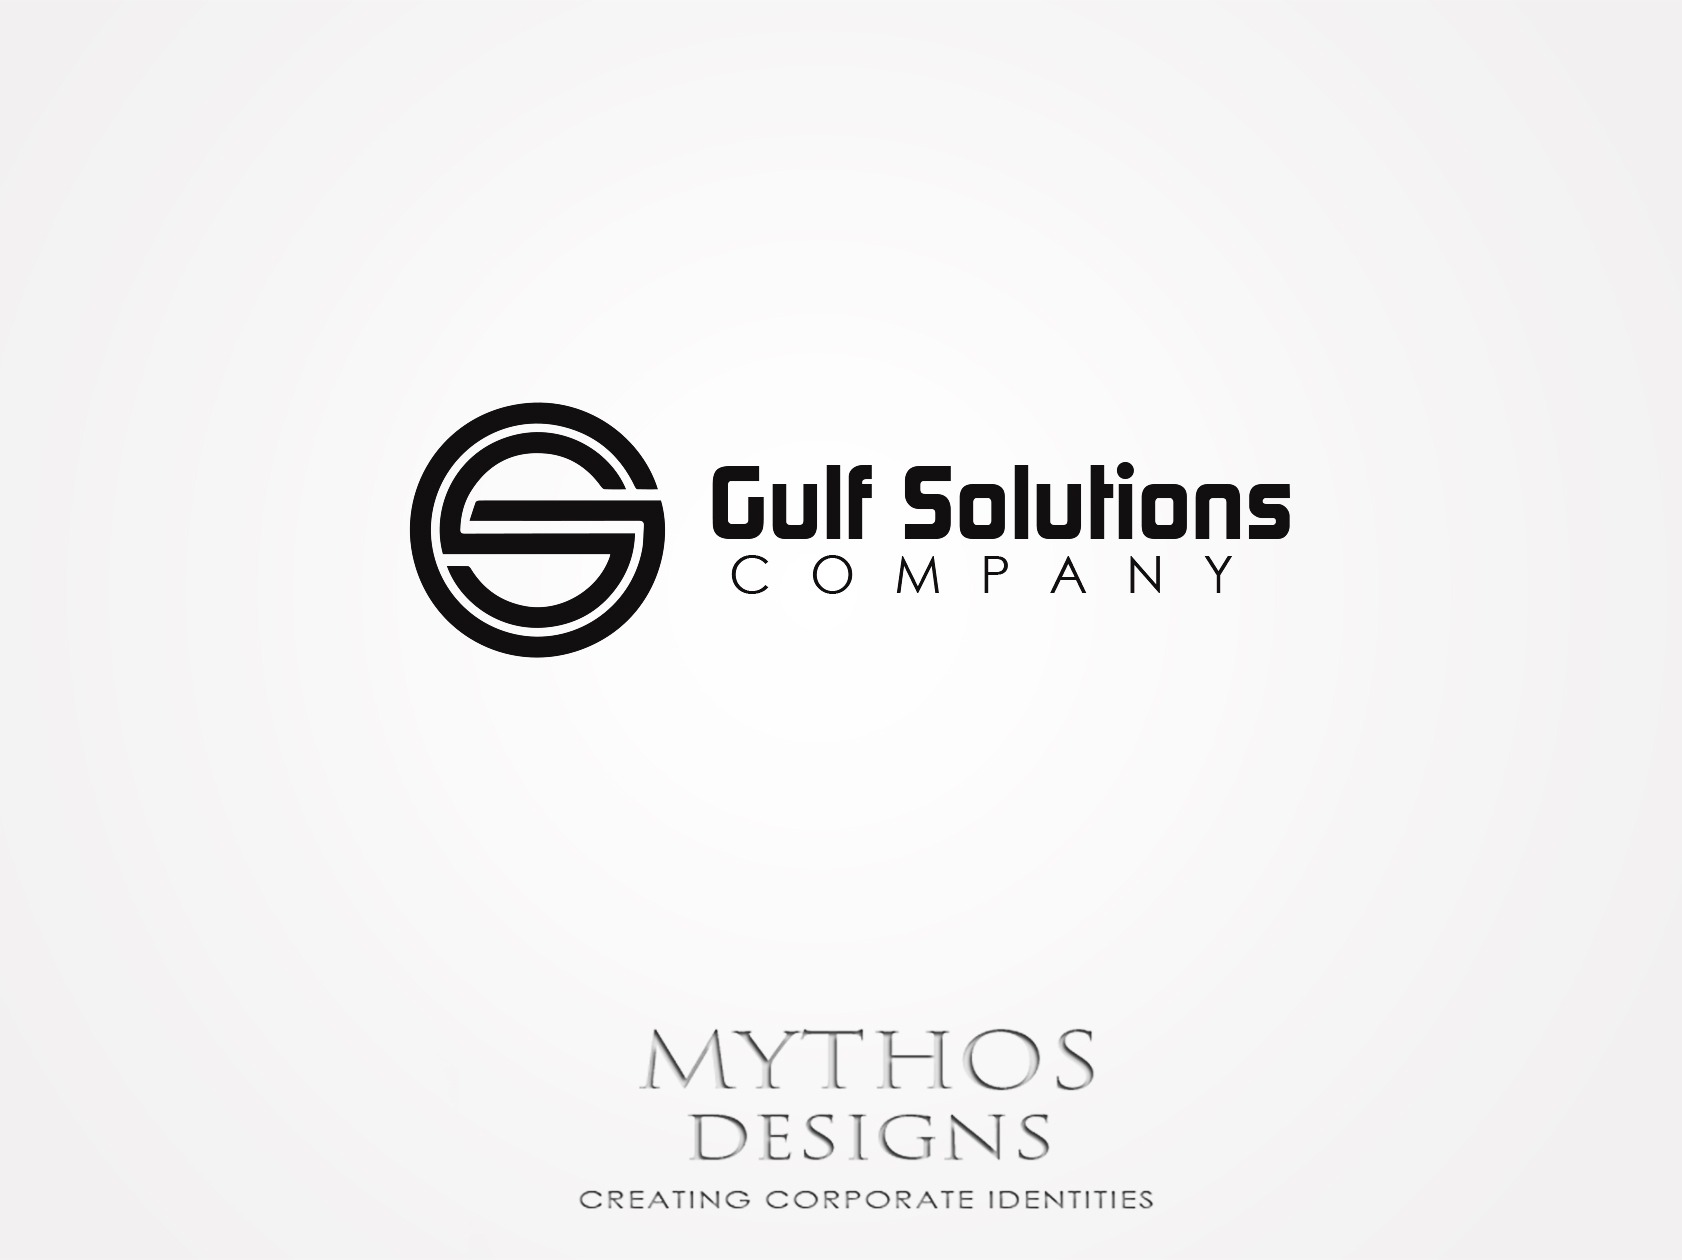 Logo Design by Mythos Designs - Entry No. 25 in the Logo Design Contest New Logo Design for Gulf solutions company.